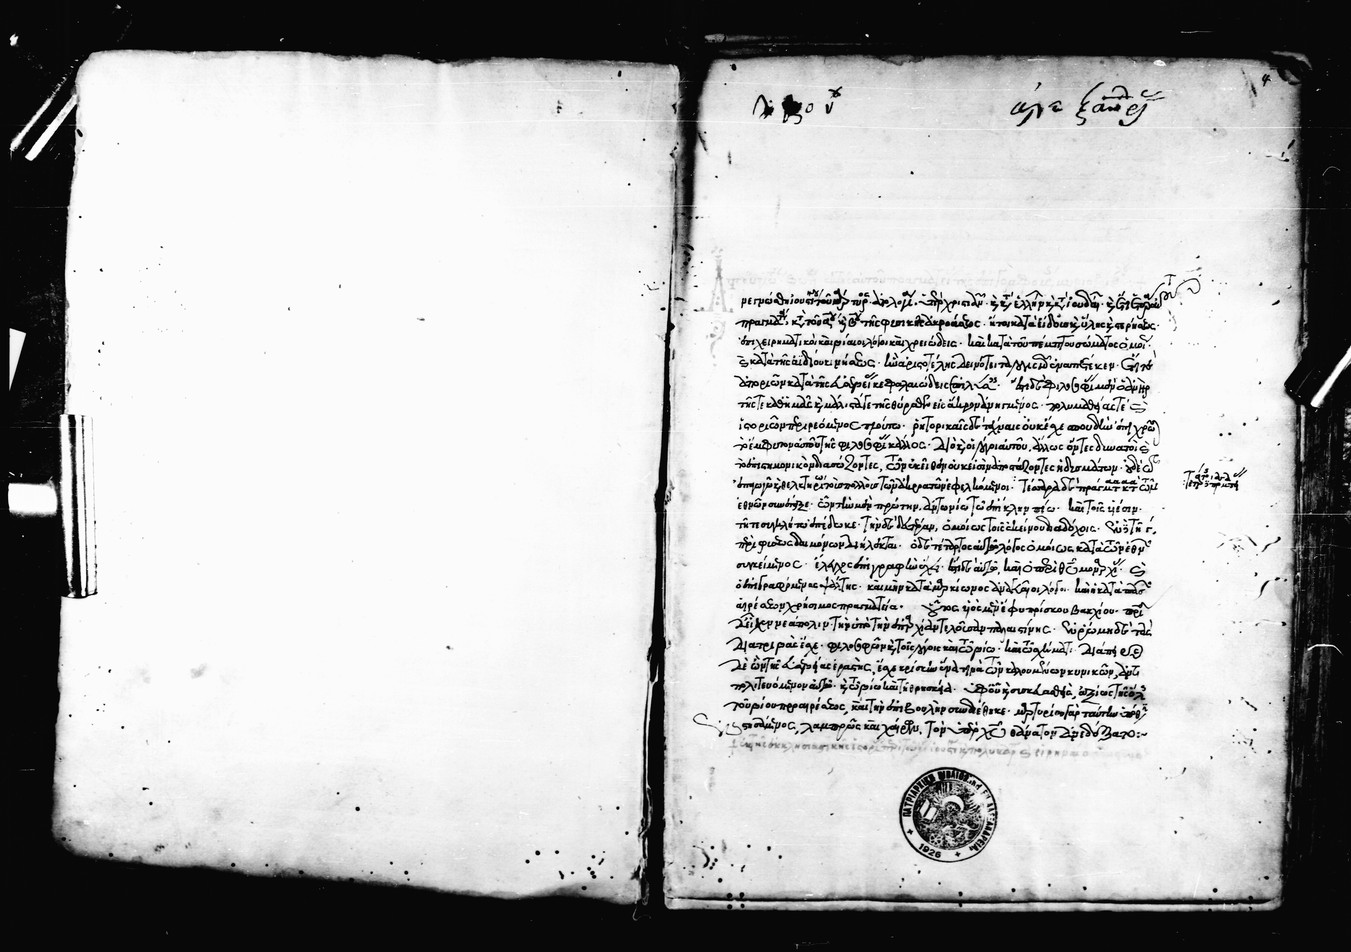 PLA_MS_60_3rd_paper_flyleaf_the_beginning_of_the_main_paper_codex